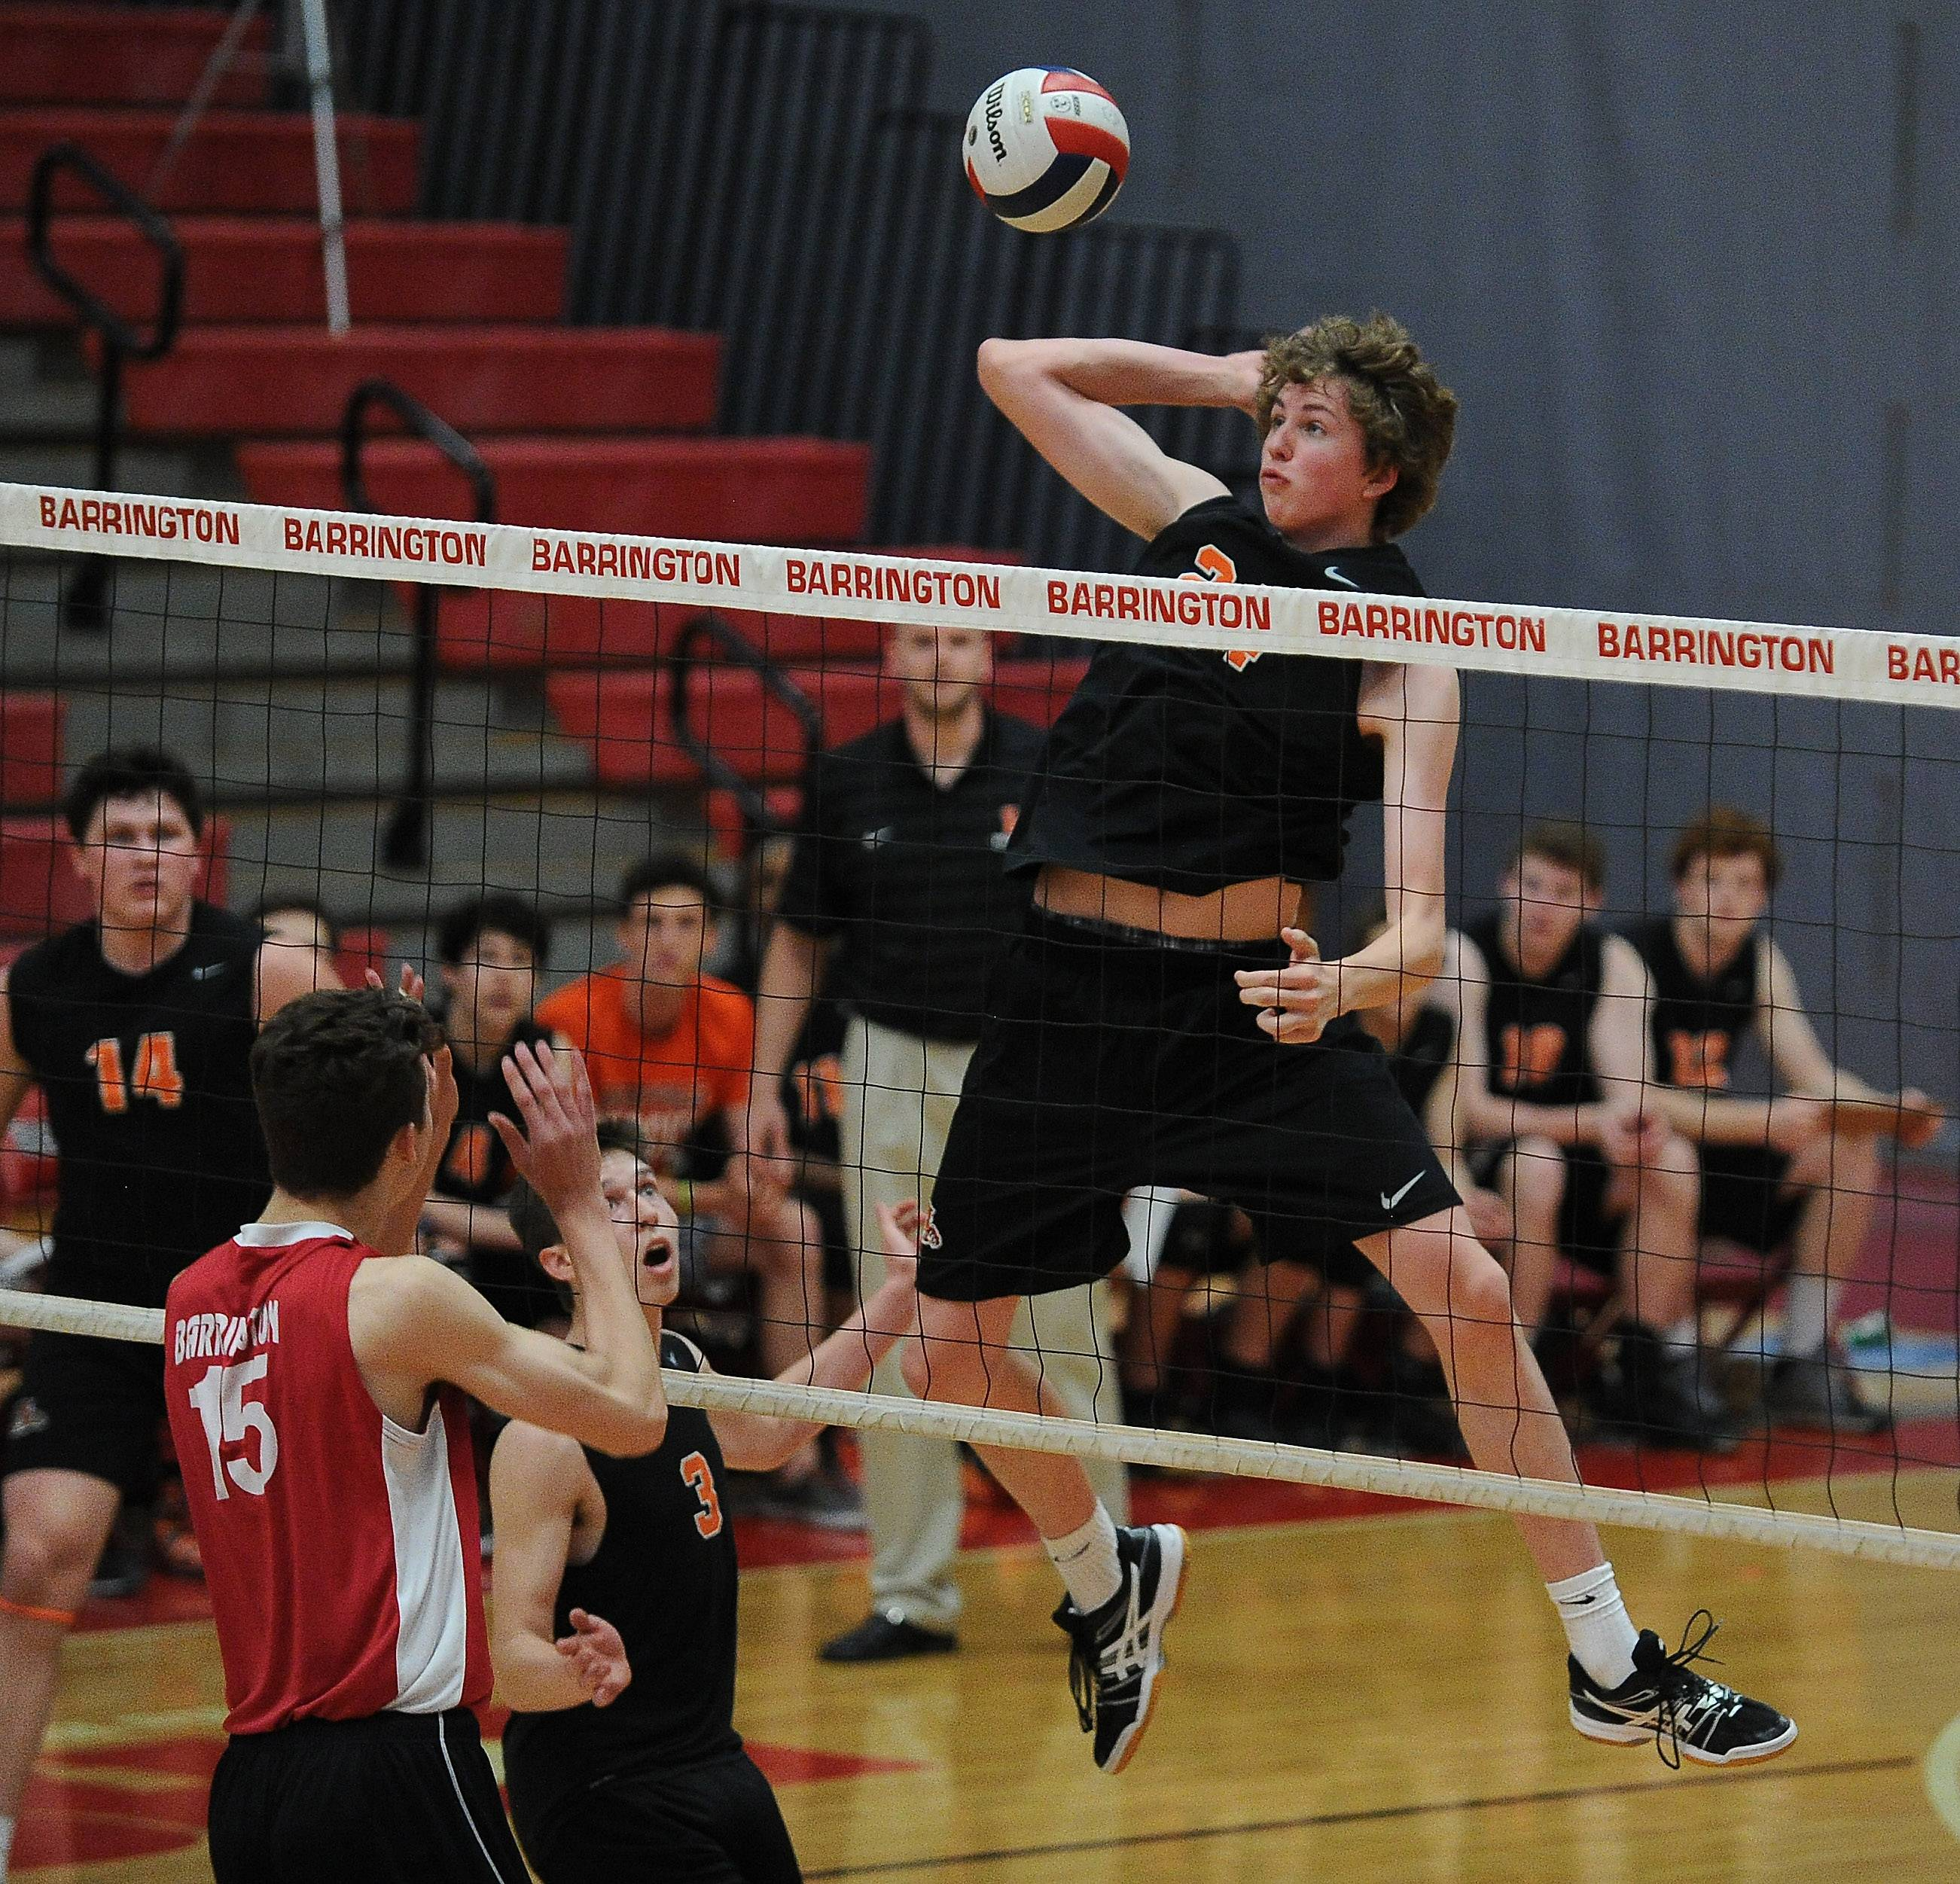 Libertyville's Shane Feiereisel gains height to slam one past Barrington's T. J. Murray in sectional semifinal play at Barrington High School on Friday.